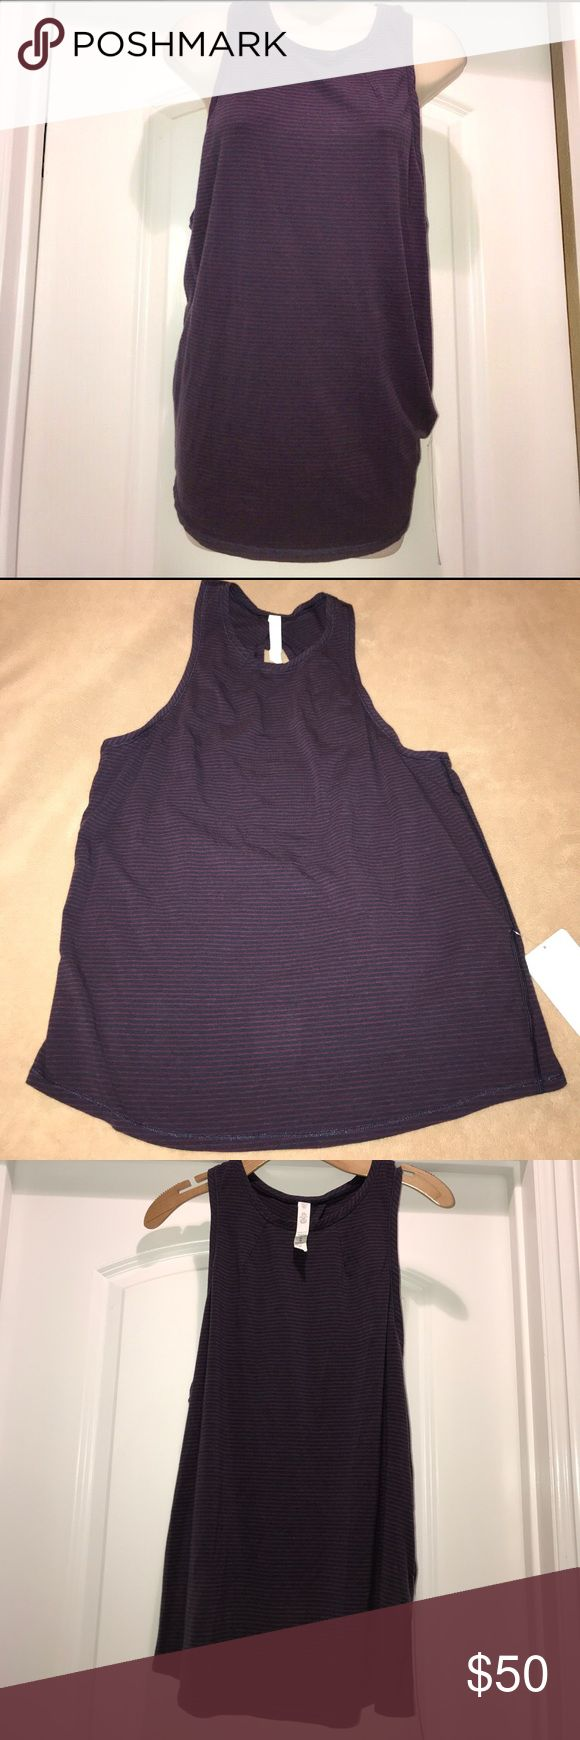 "Lululemon All Tied Up Purple/Navy Striped Tank 10 New with tags, purple and navy striped Lululemon ""All Tied Up"" Tank, size 10. Super cute, hard to find. lululemon athletica Tops Tank Tops"